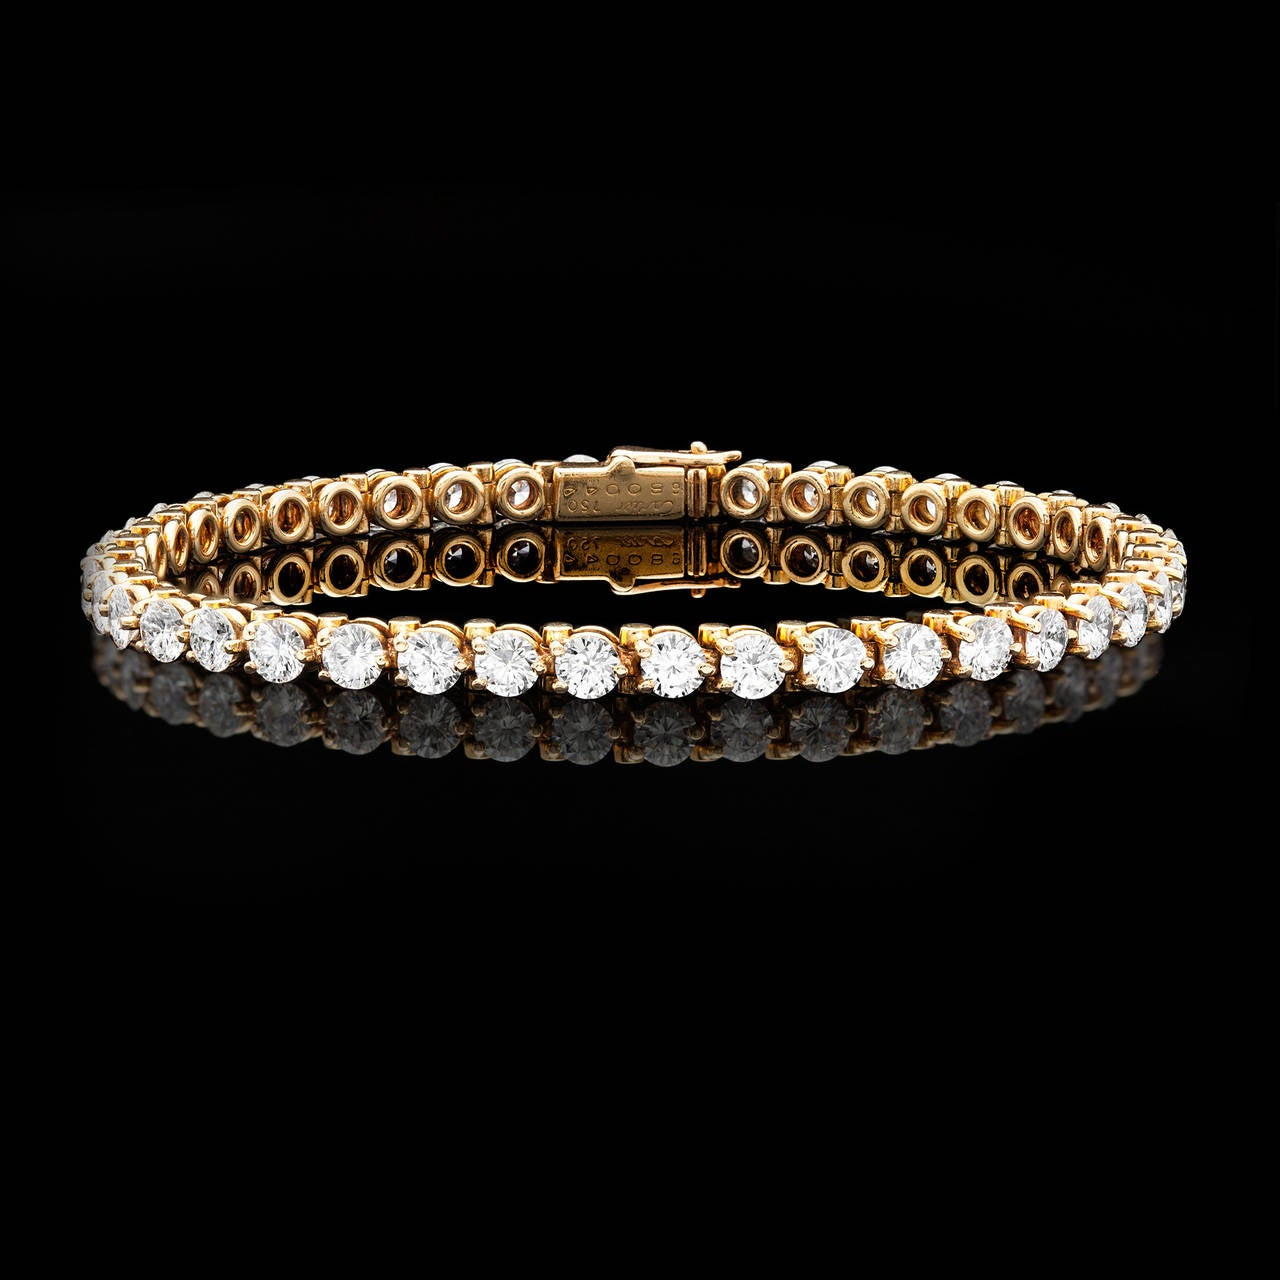 Cartier 6.30 Carat Diamond Gold Tennis Bracelet 2